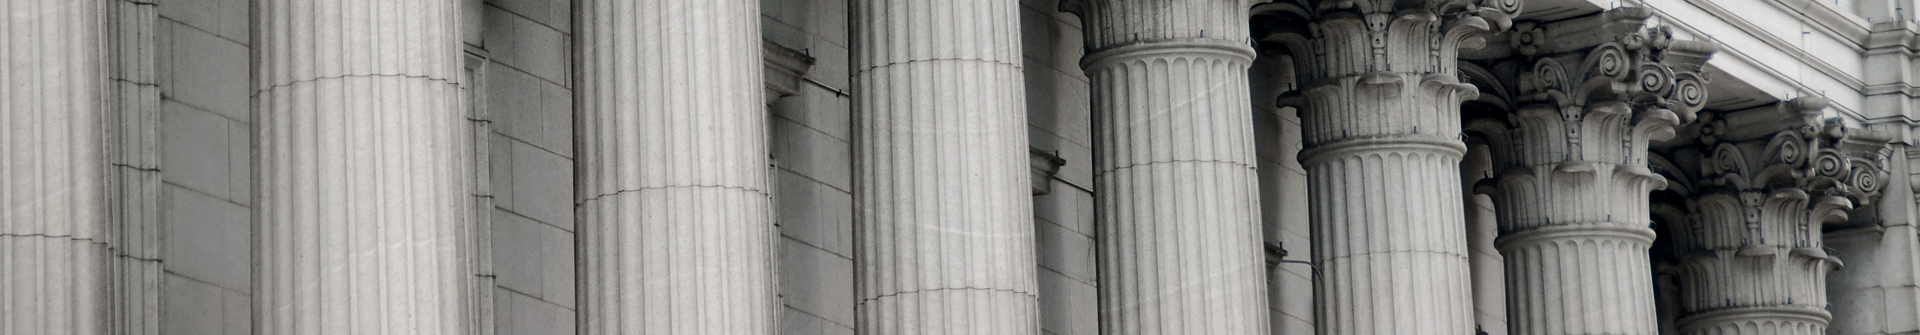 pillars in front of a courthouse.